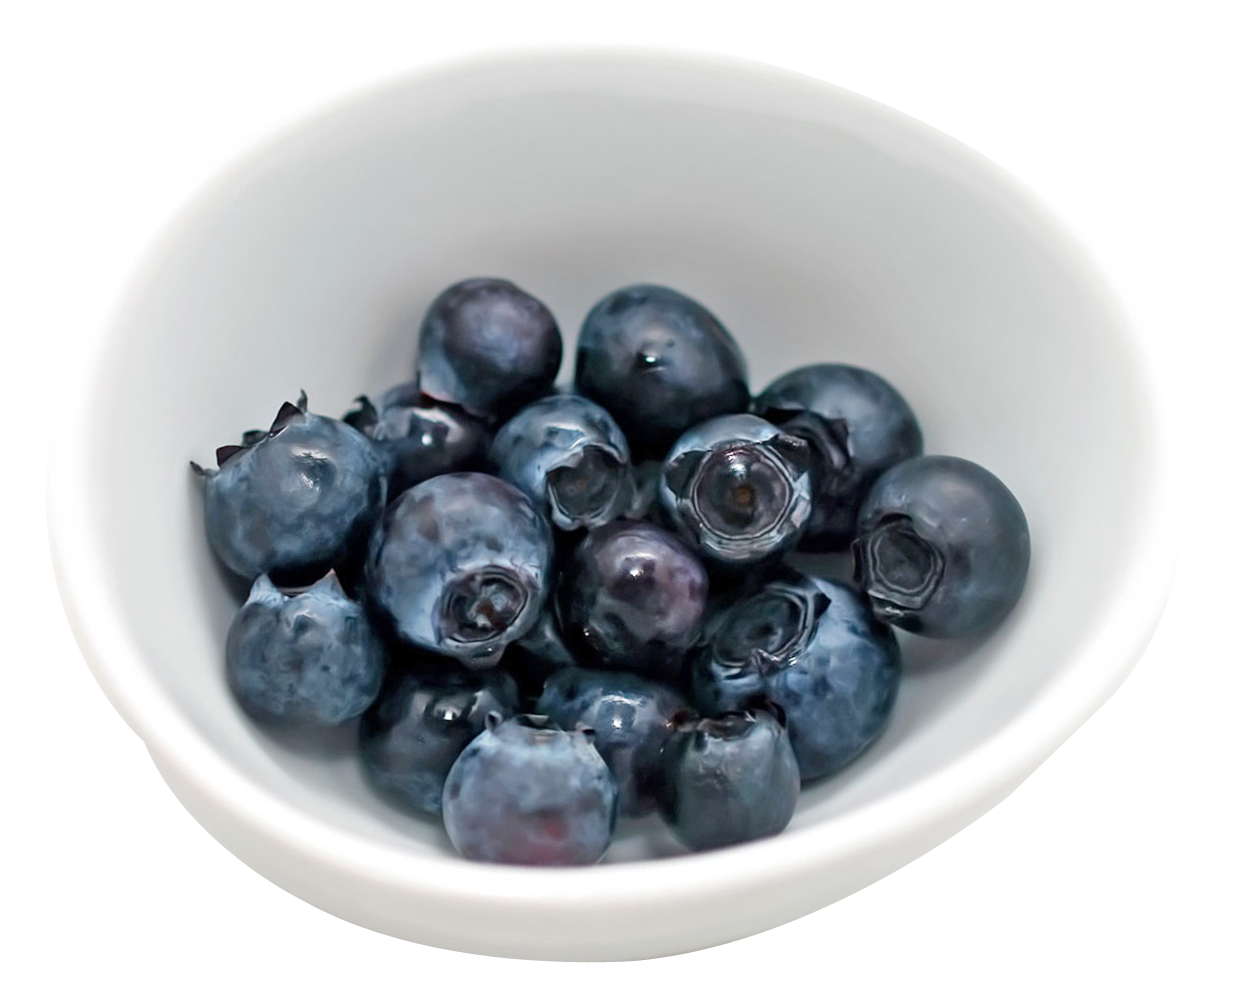 blueberries bowl png image pngpix #28857